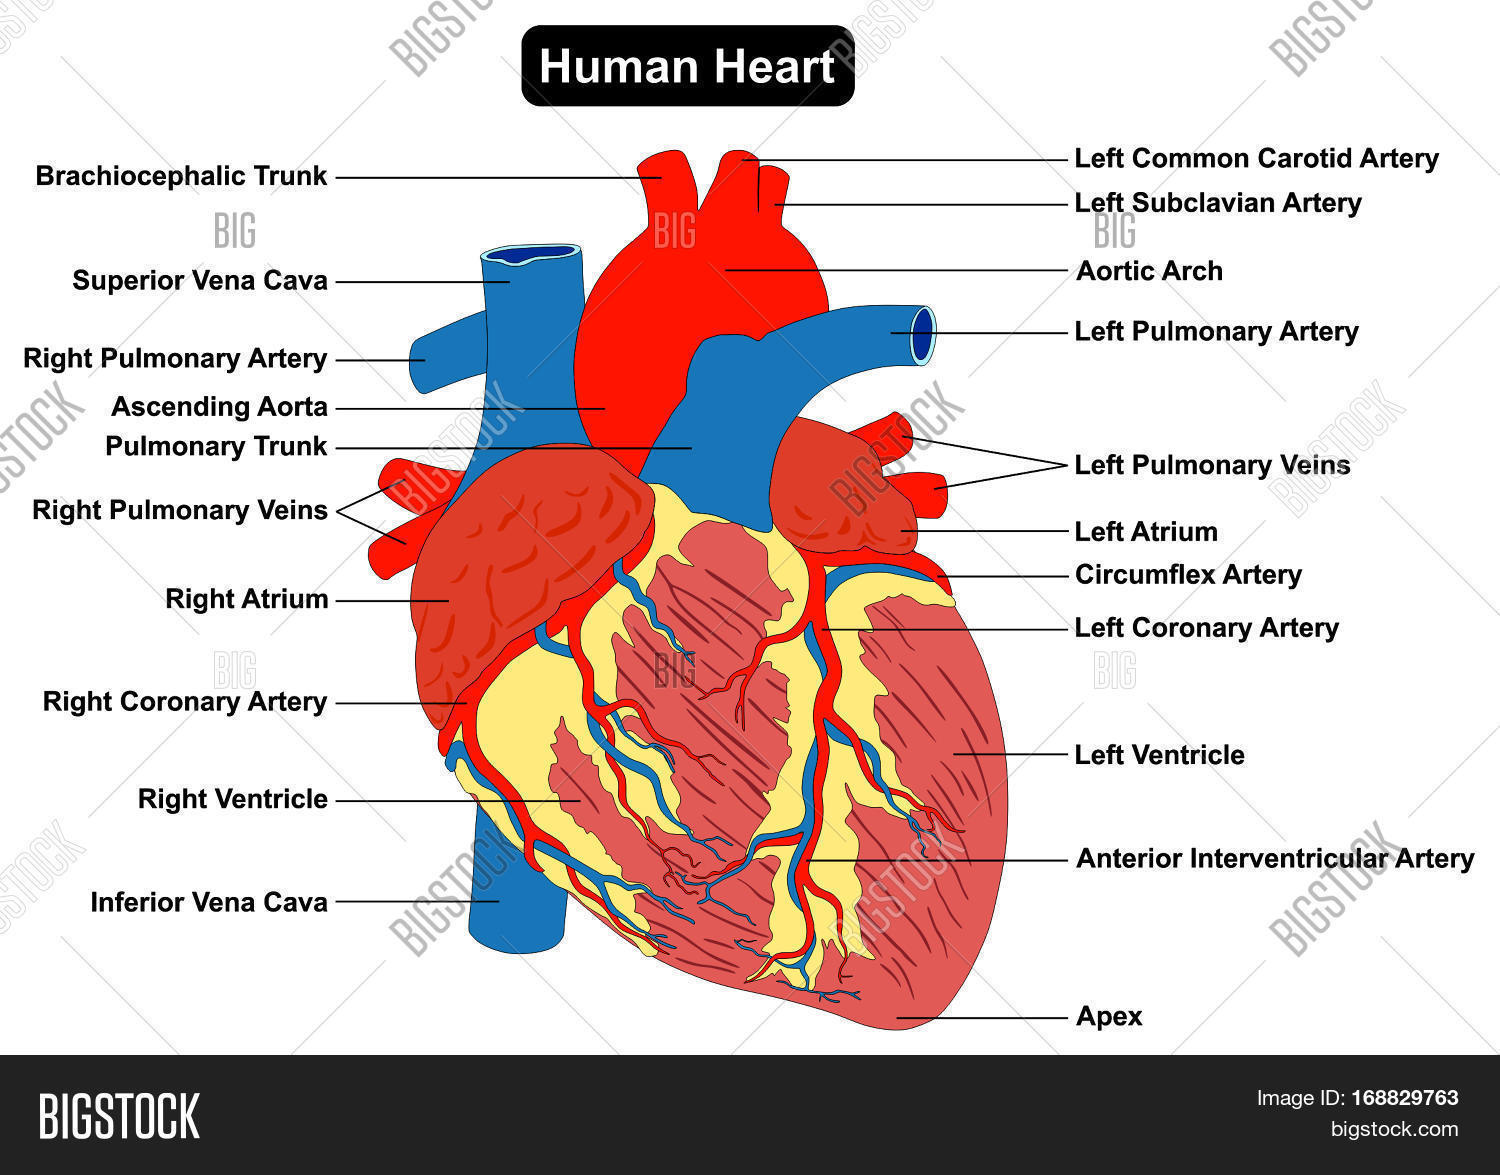 cardiac muscle tissue diagram labeled dimmer switch extension cord human heart structure anatomy infographic chart